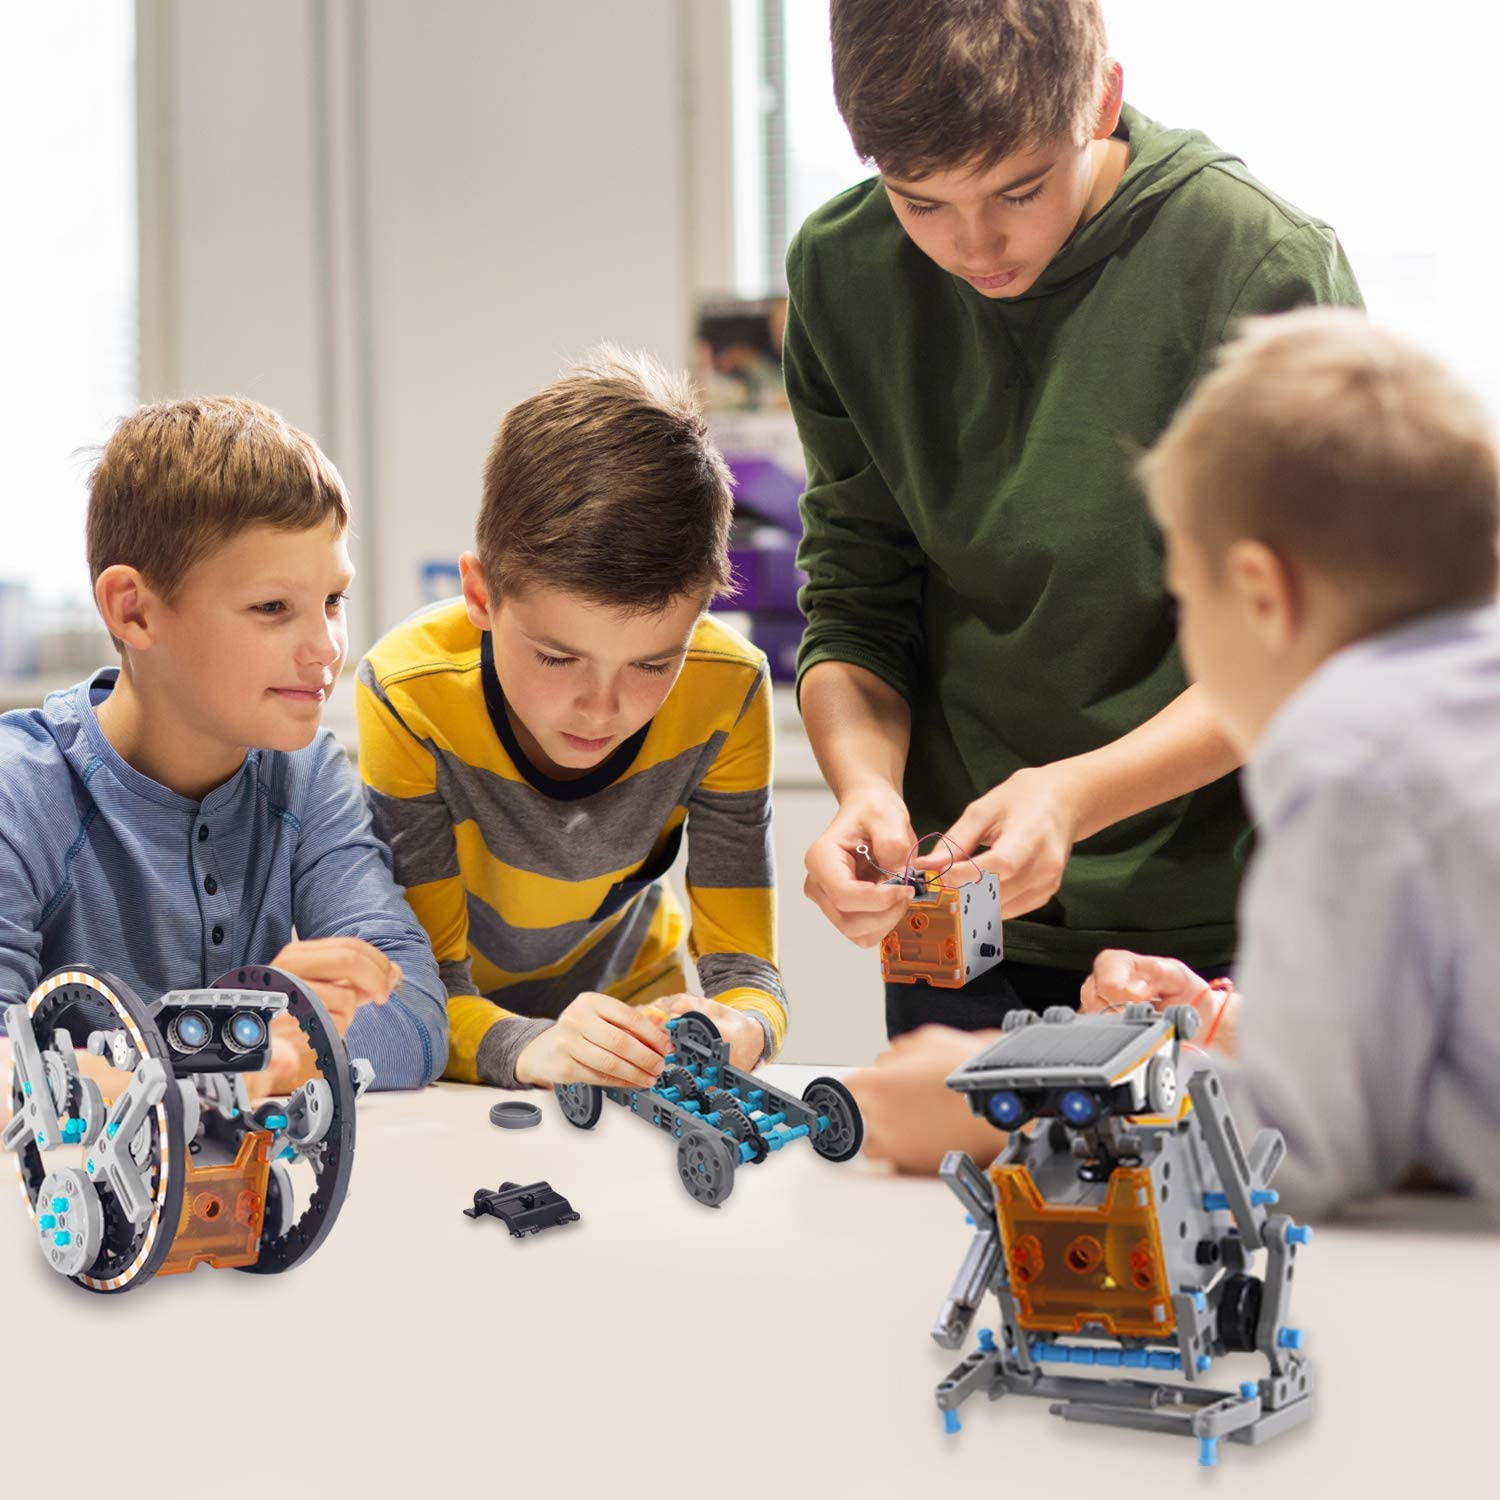 Year Old Boys Creative Activity-Powered by The Sun BOZTX 12-in-1 STEM Education DIY Solar Robot Toys Building Science Kits for Kids 10-12 Years Old Boys Great Birthday for 8 9 10 11 12